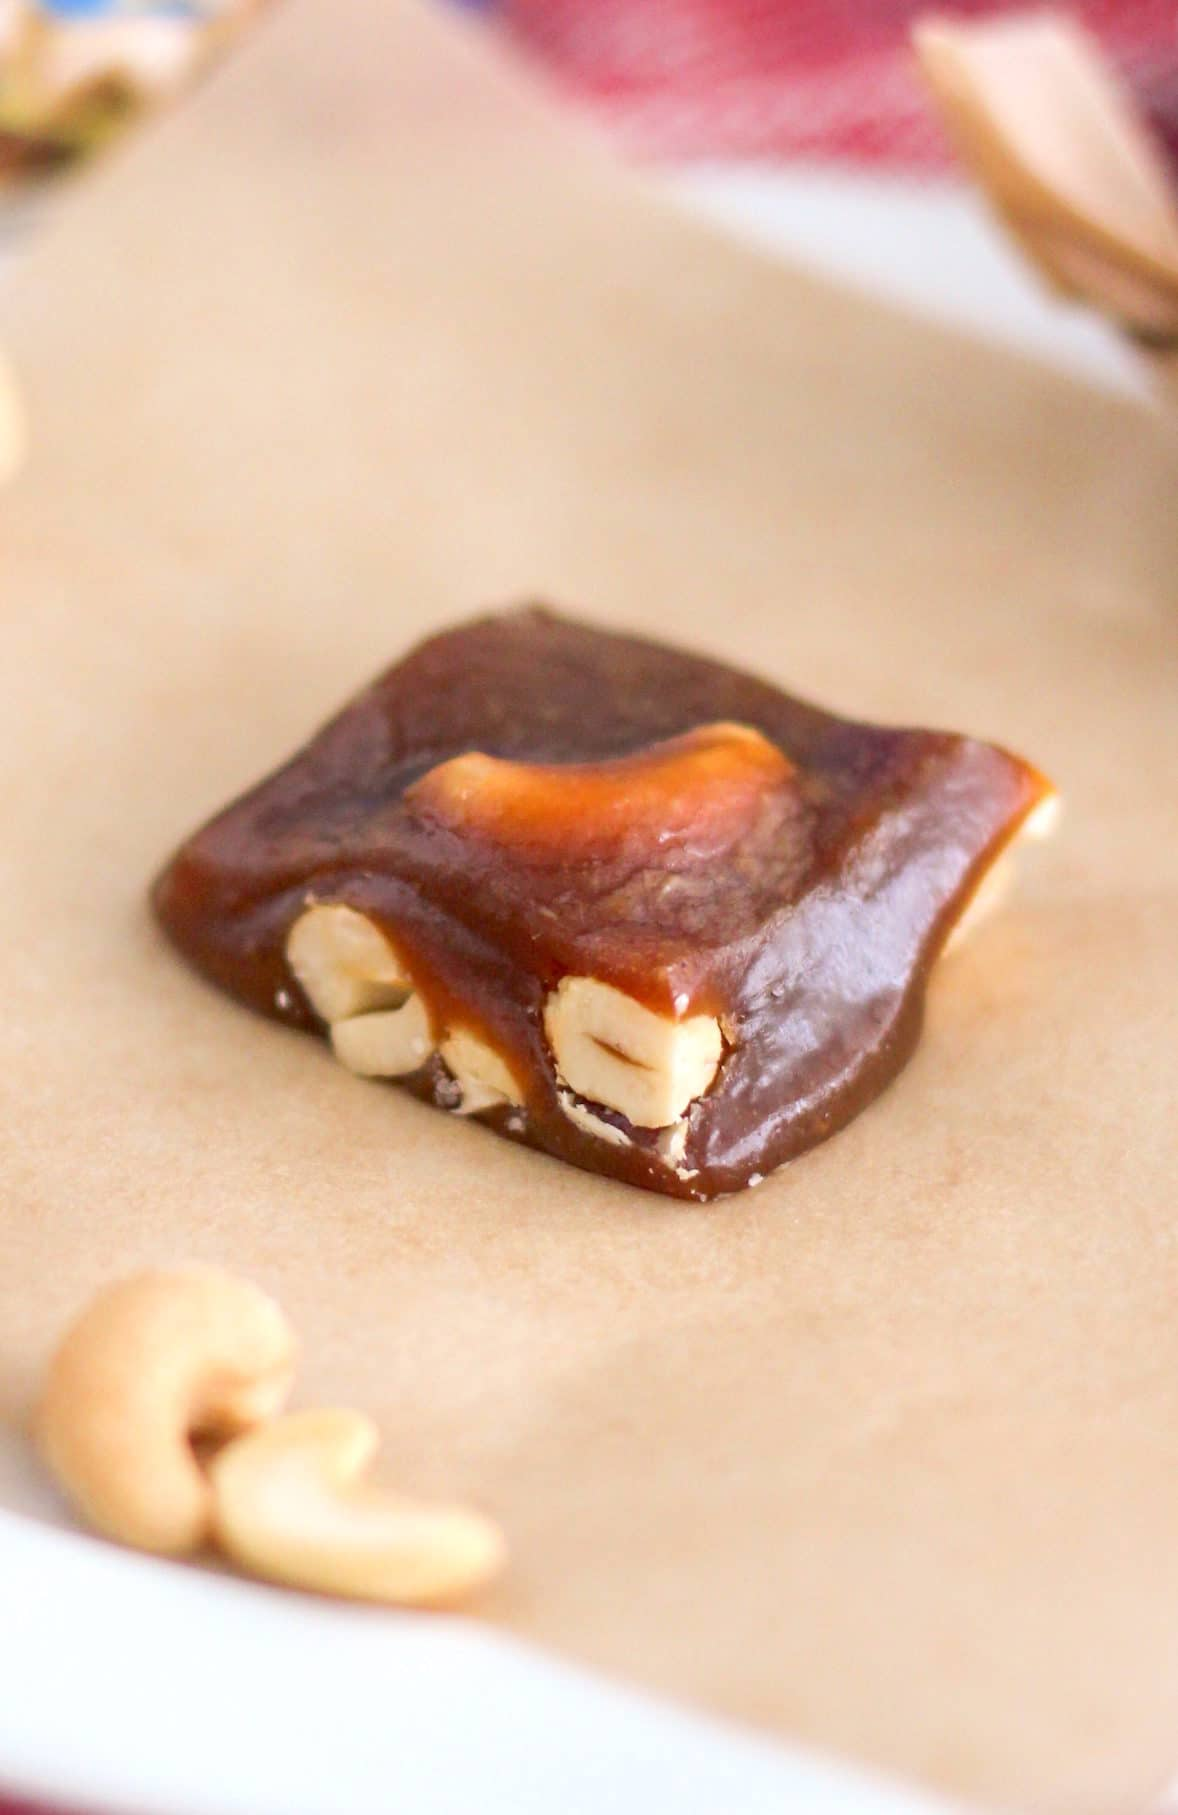 Homemade Decadent Cashew Caramels (refined sugar free, dairy free, vegan) - Healthy Dessert Recipes at Desserts with Benefits